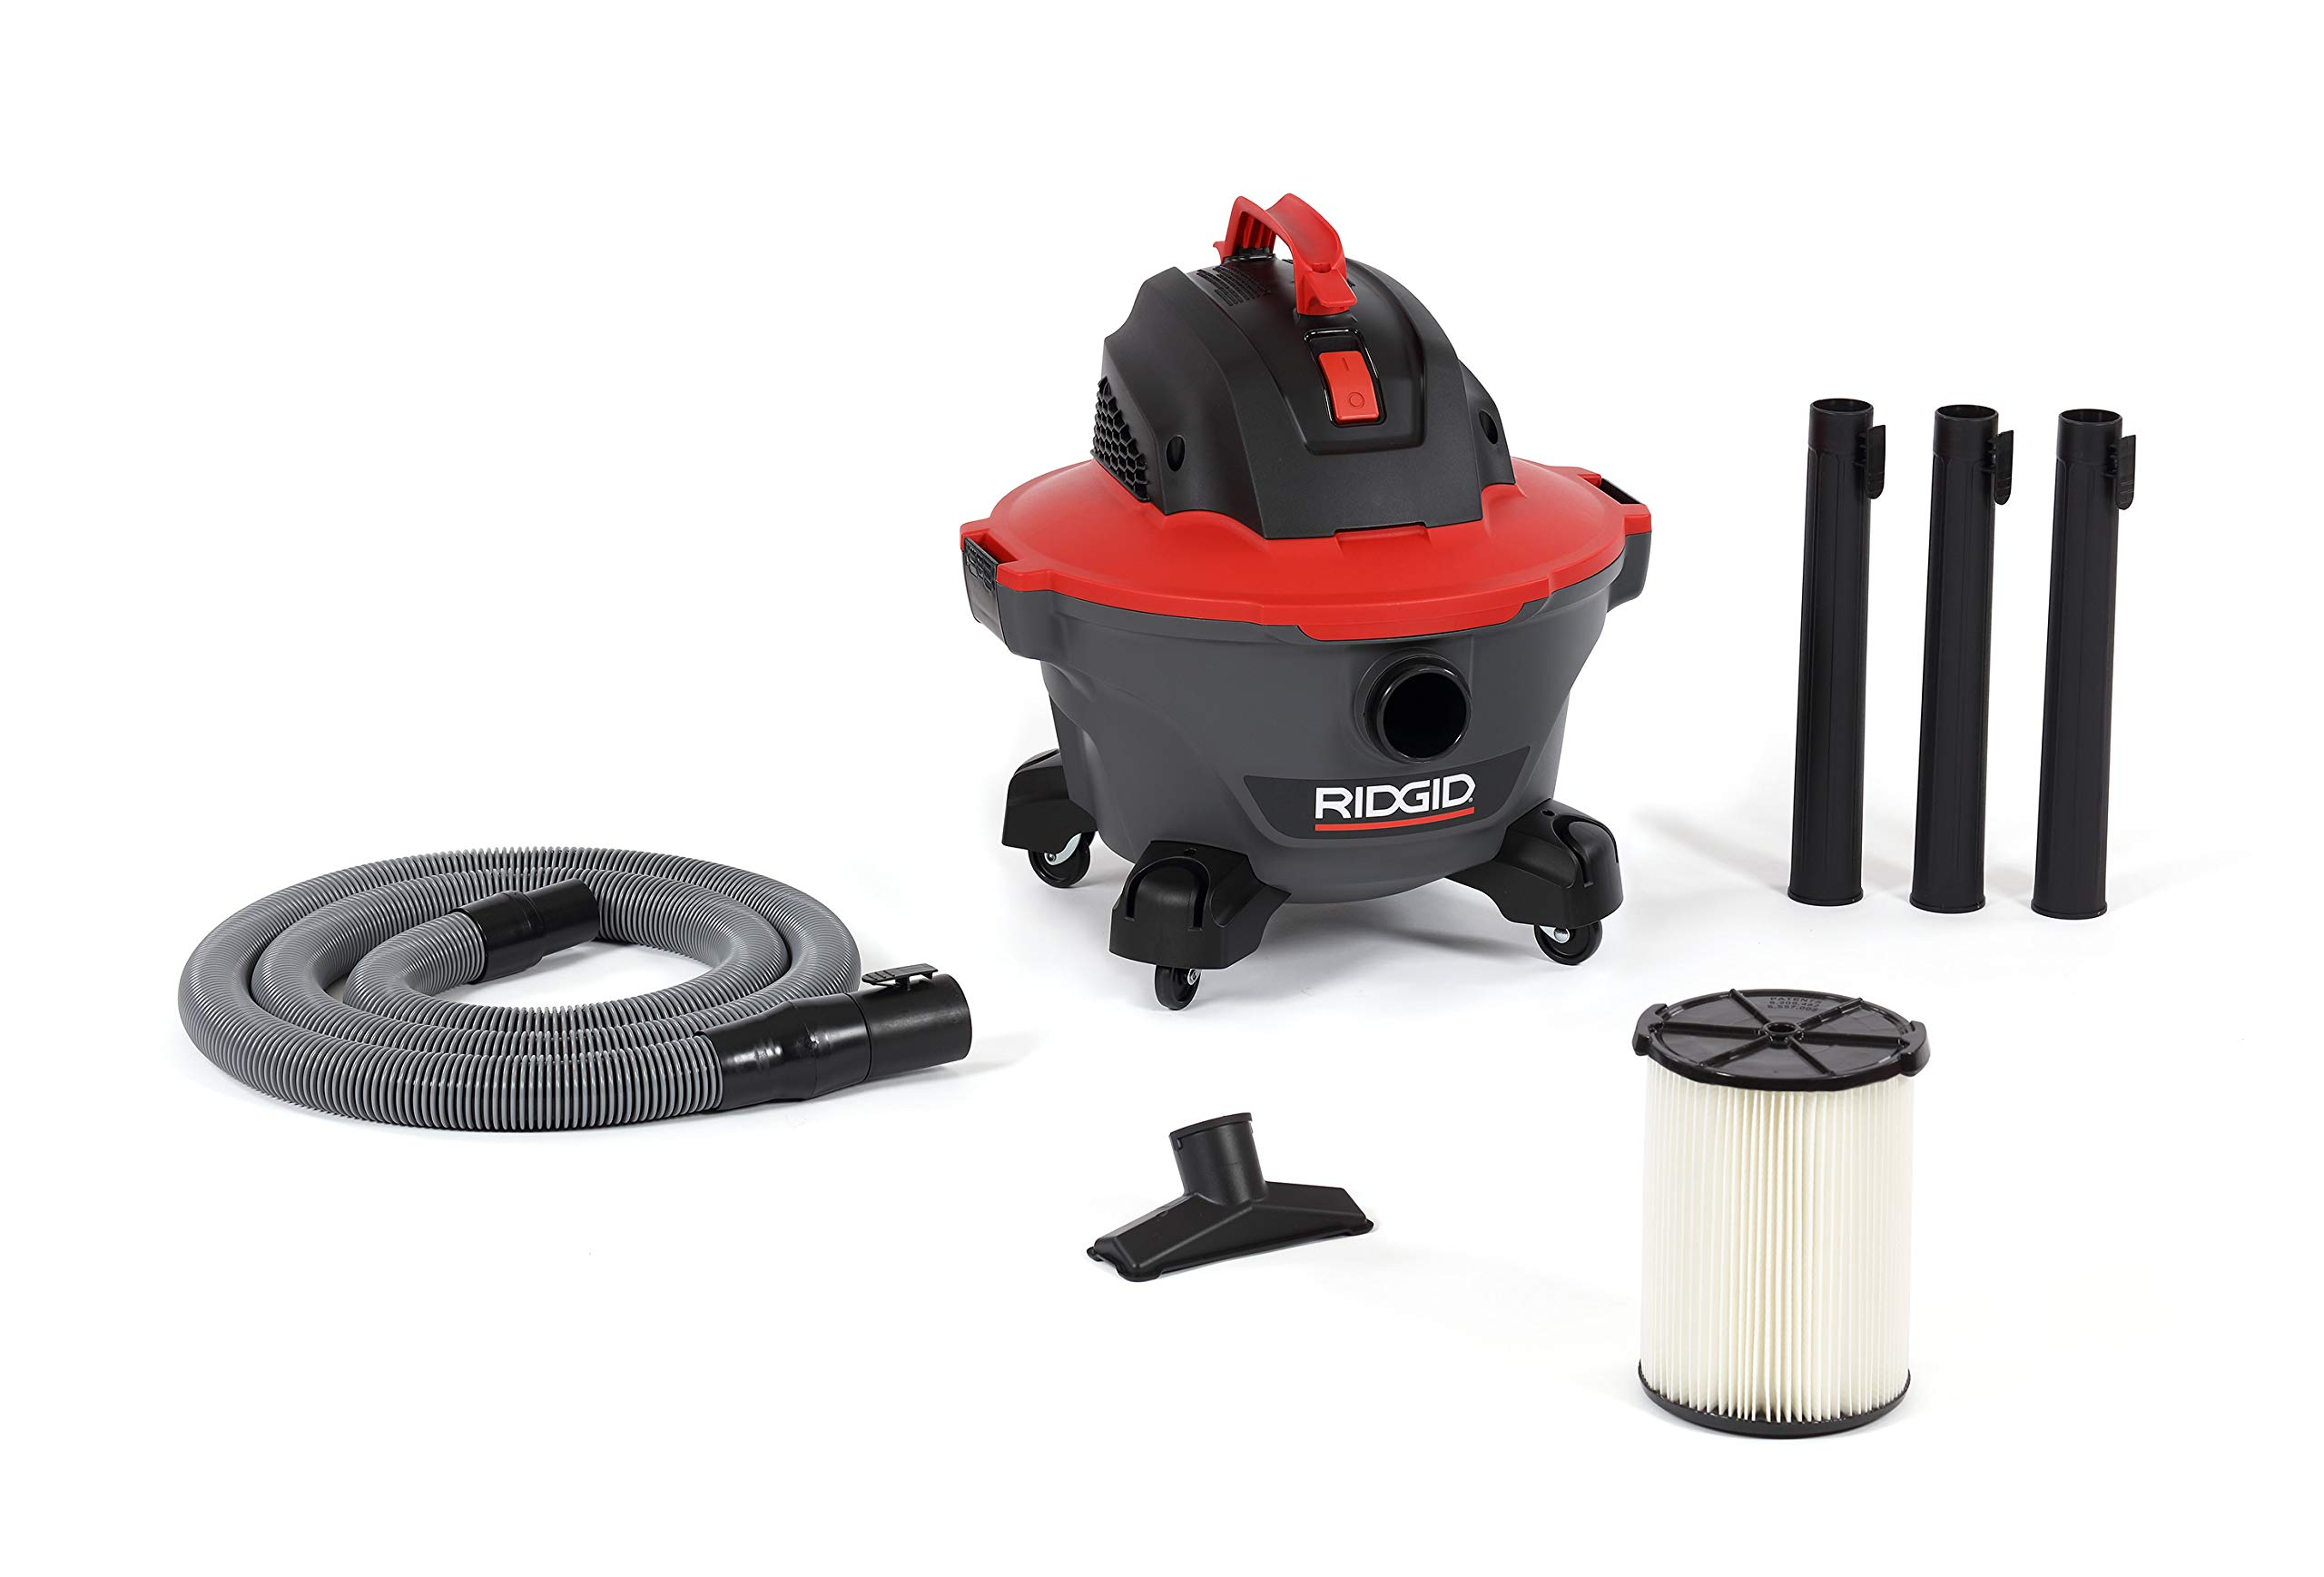 Ridgid 62698 Red 6 gallon RT0600 Wet/Dry Vacuum by Ridgid